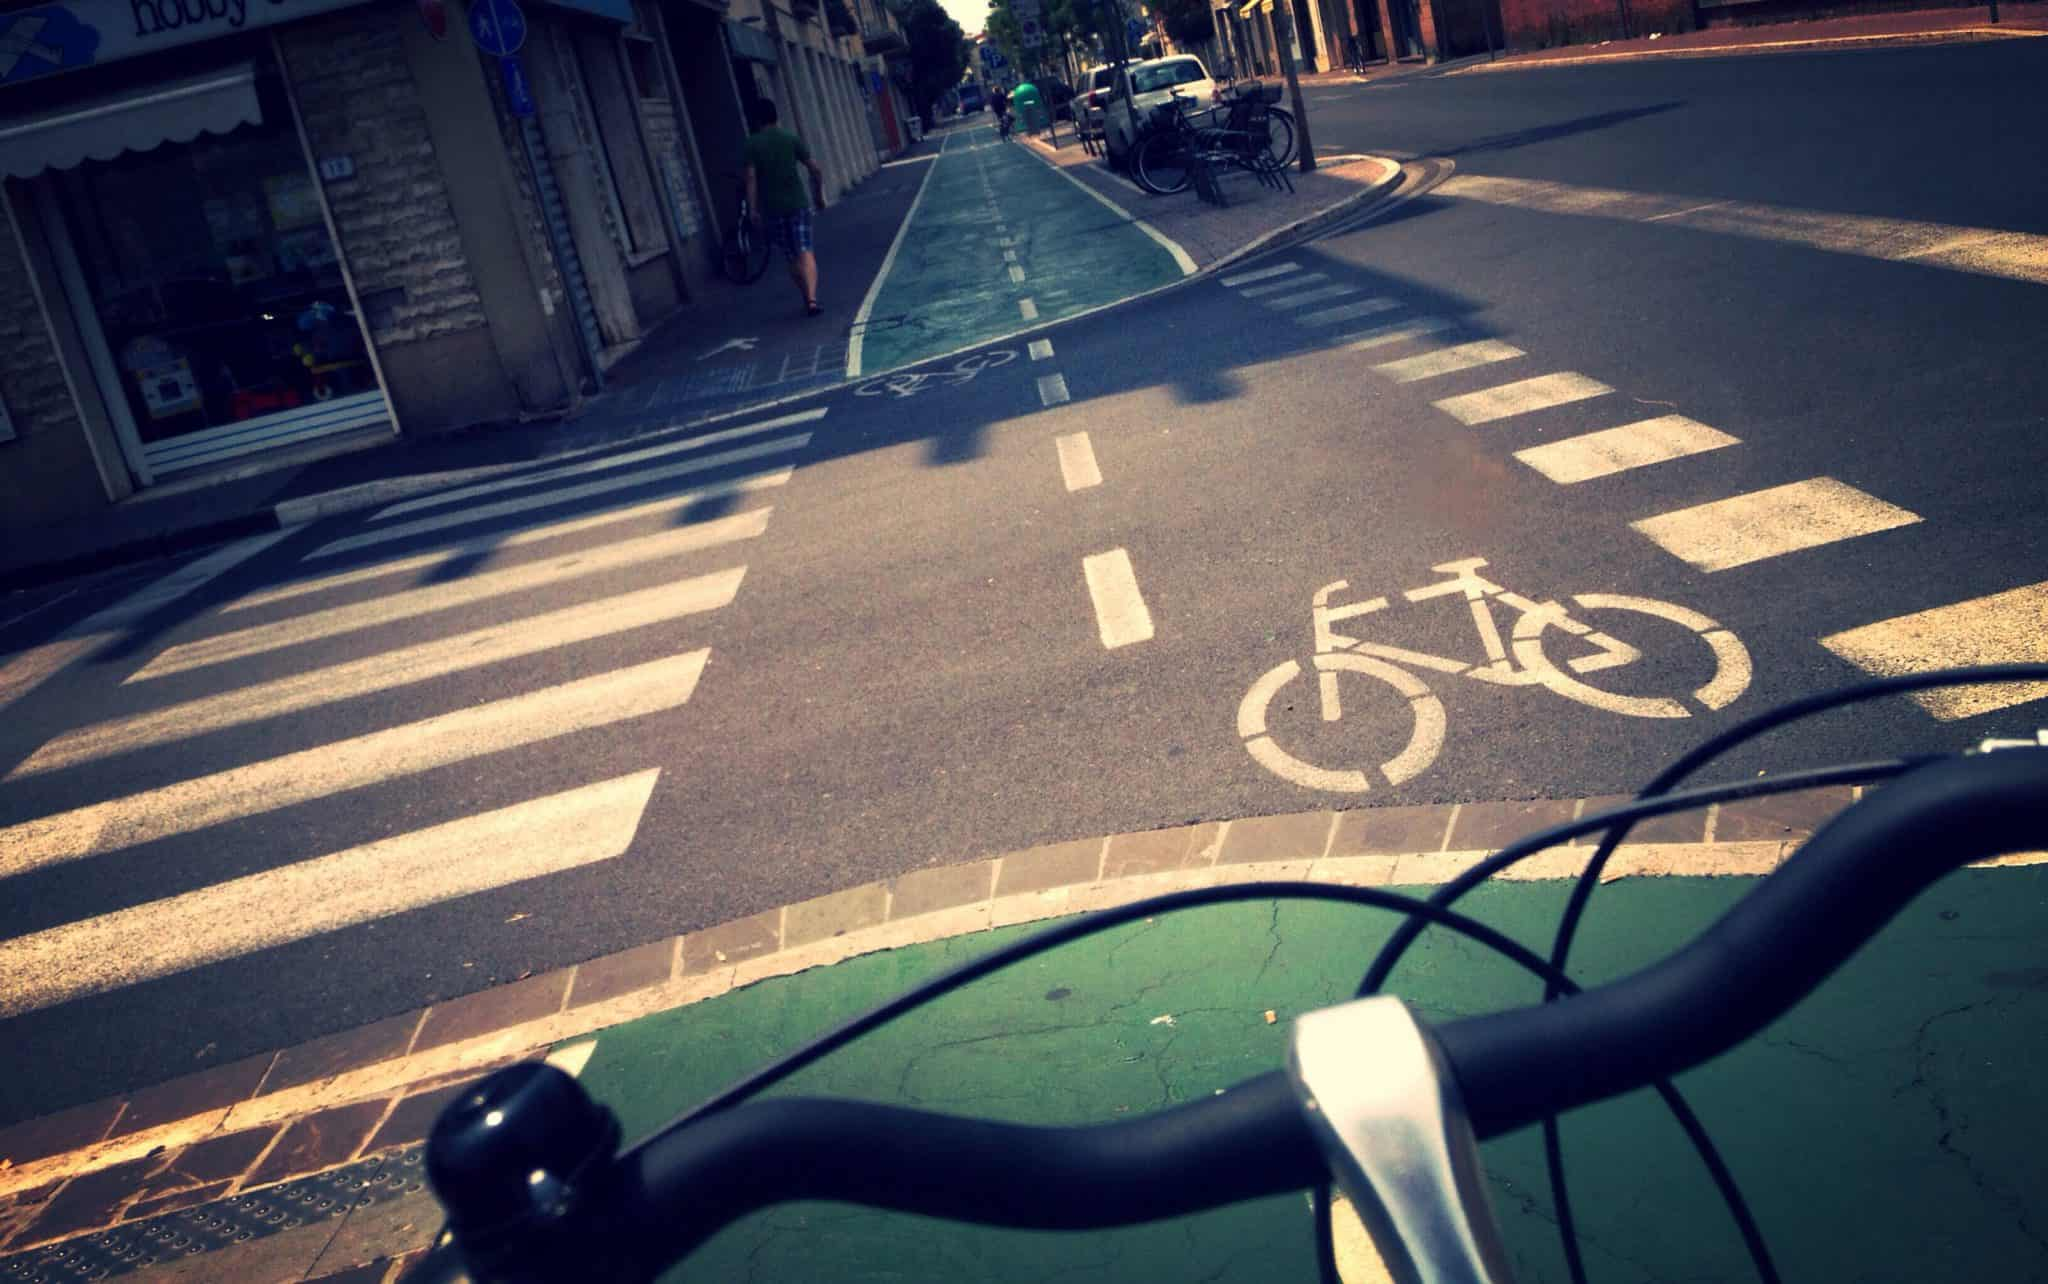 bike lane view from the cyclist